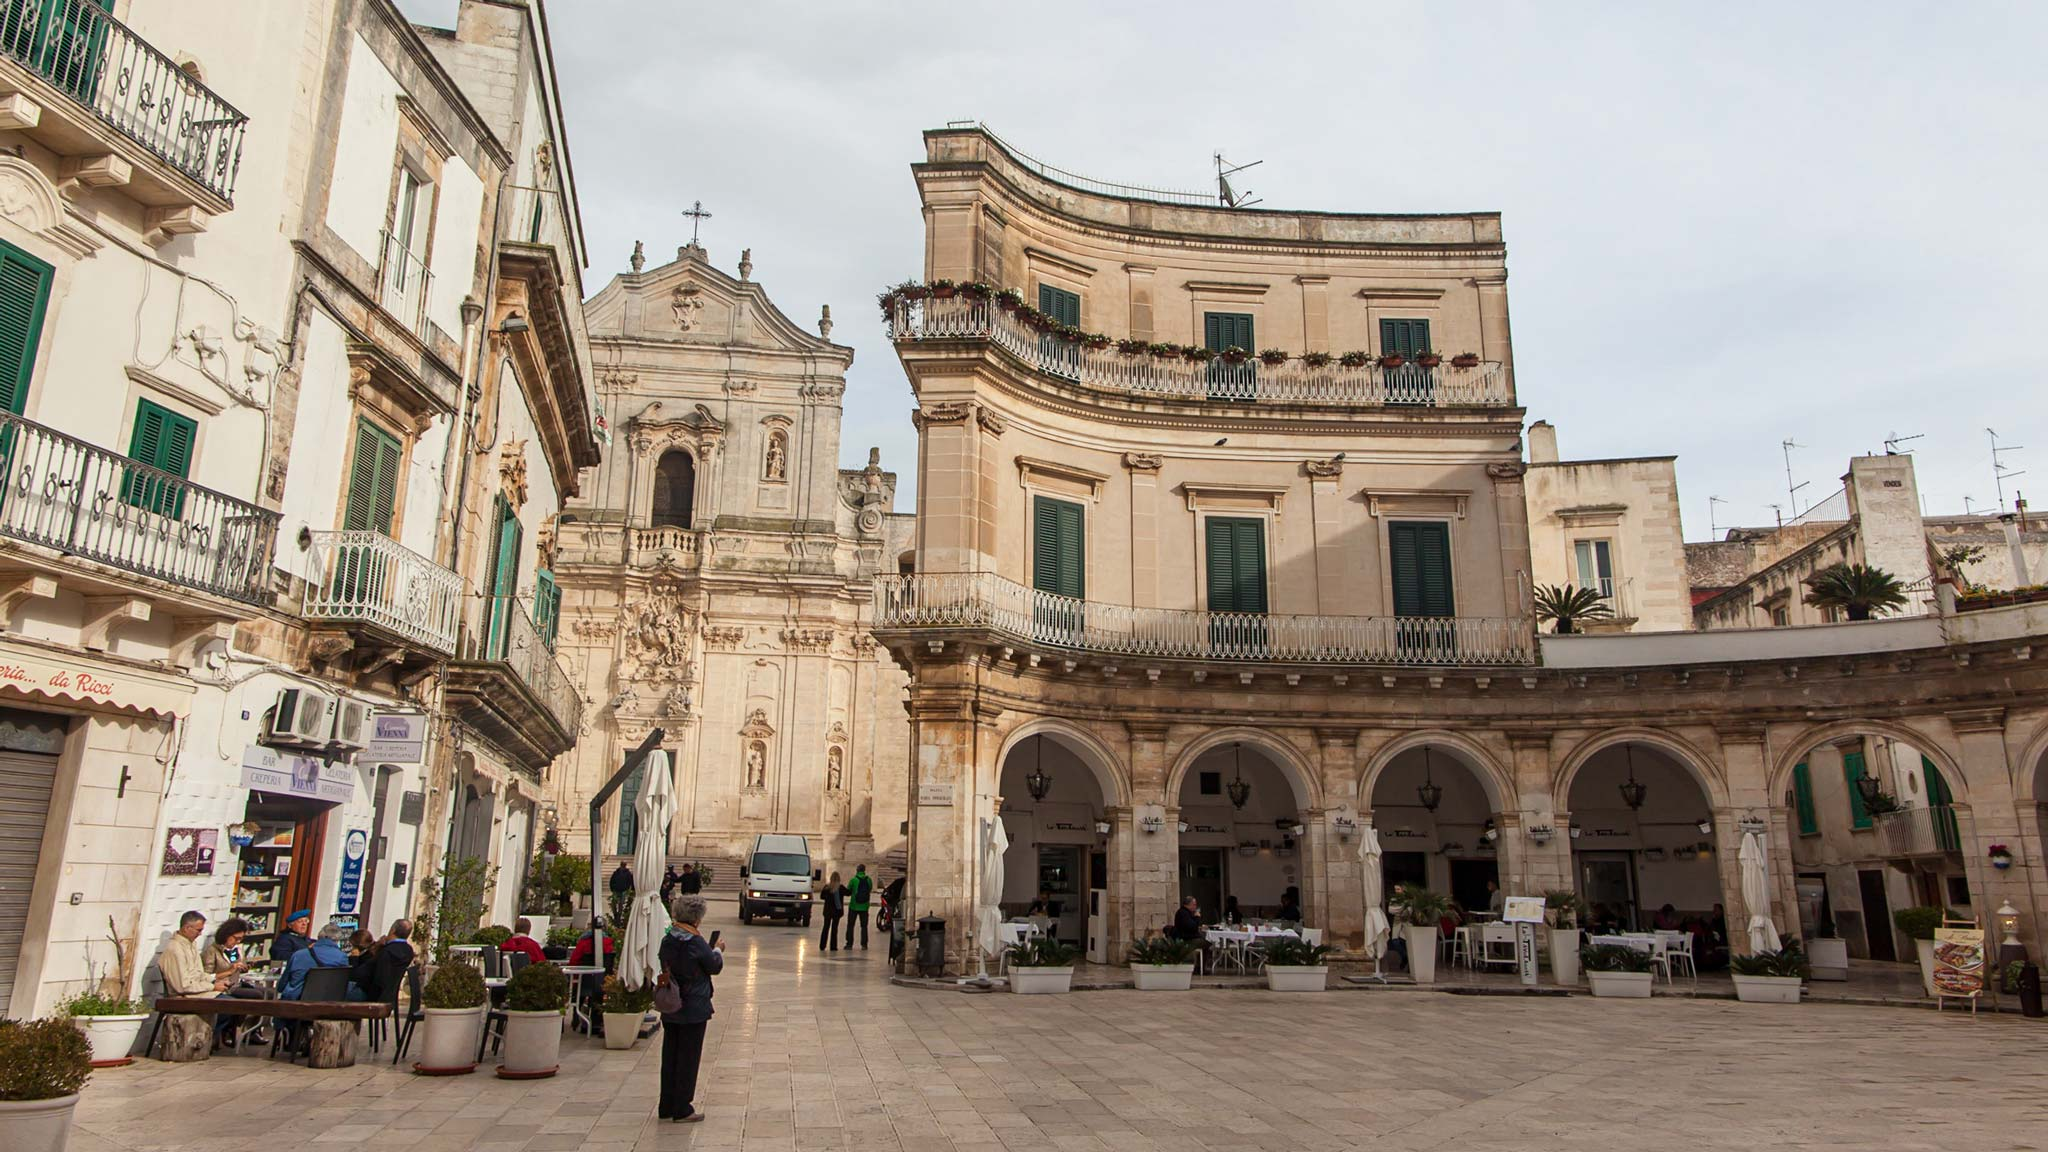 The main square of Martina Franca Puglia with arches and a cathedral